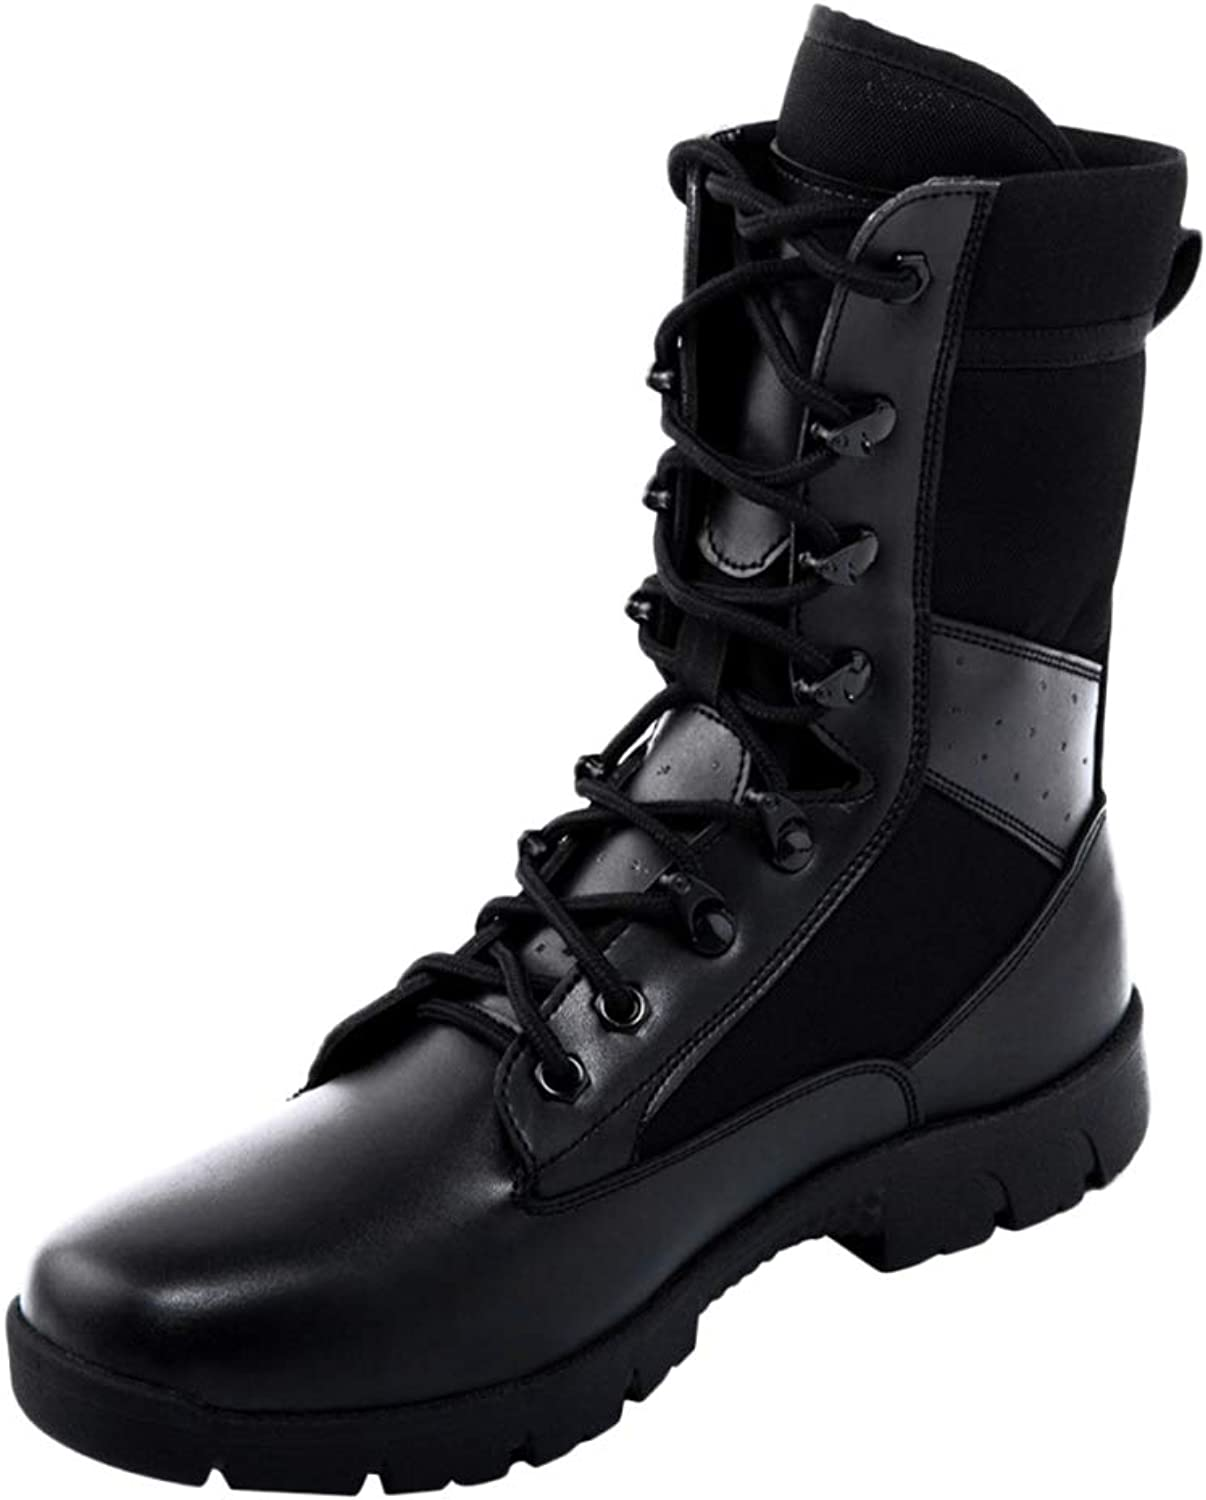 Men Boots Martin Tactical Boots Summer Desert Snow Boots Breathable Work Boots High Help Lightweight Lace-up shoes